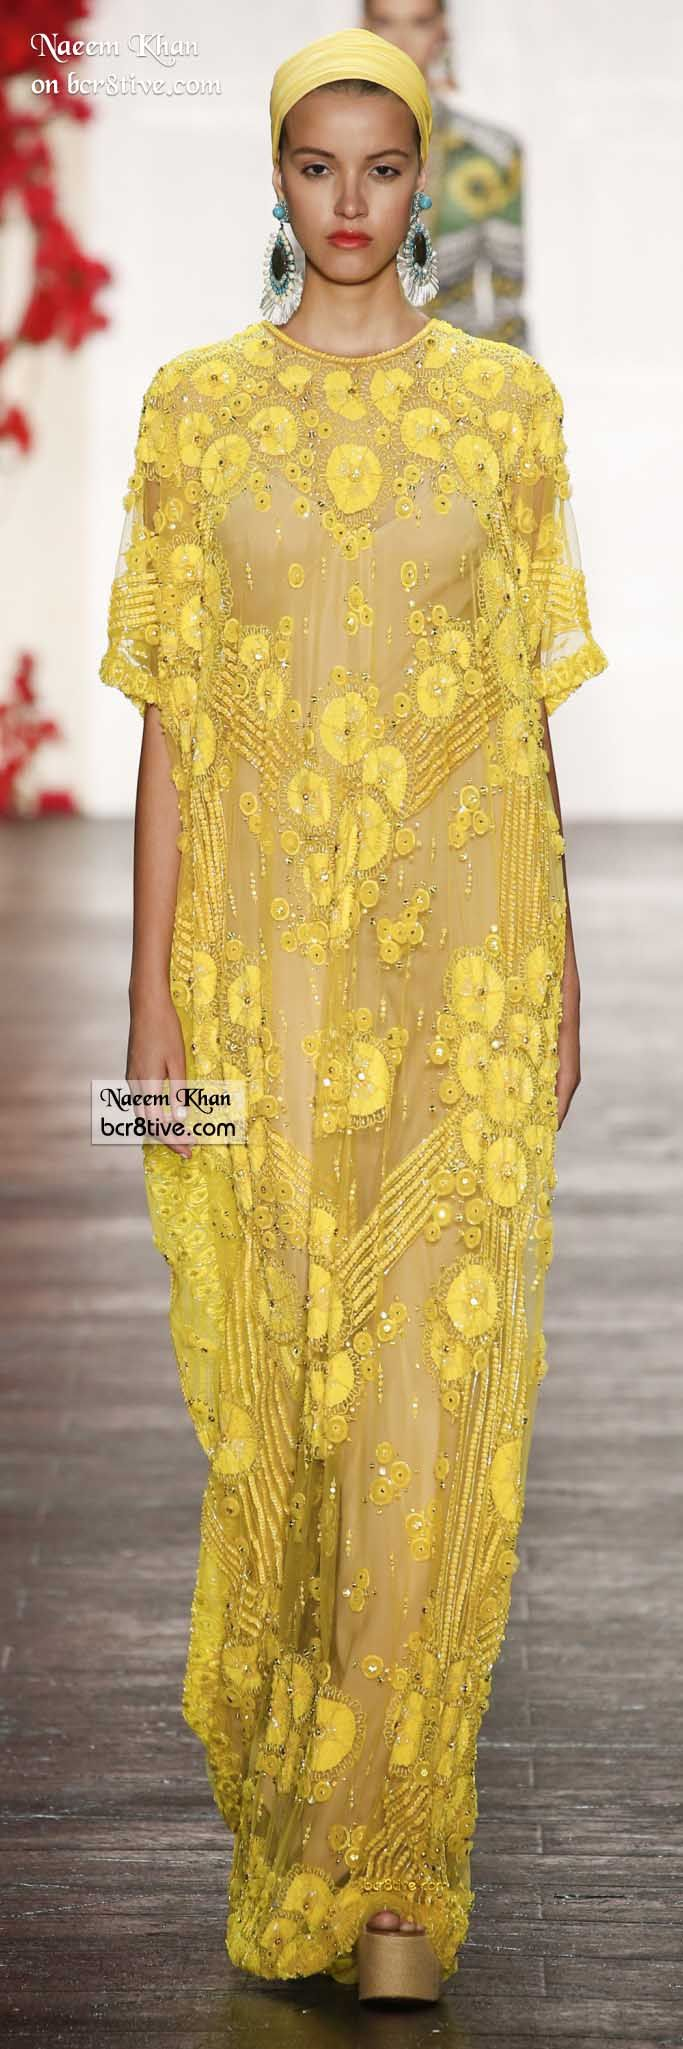 Naeem Khan Spring 2016.Come To The Casbah:Stunning Caftan Strewn With Dainty,Lush Blooms.